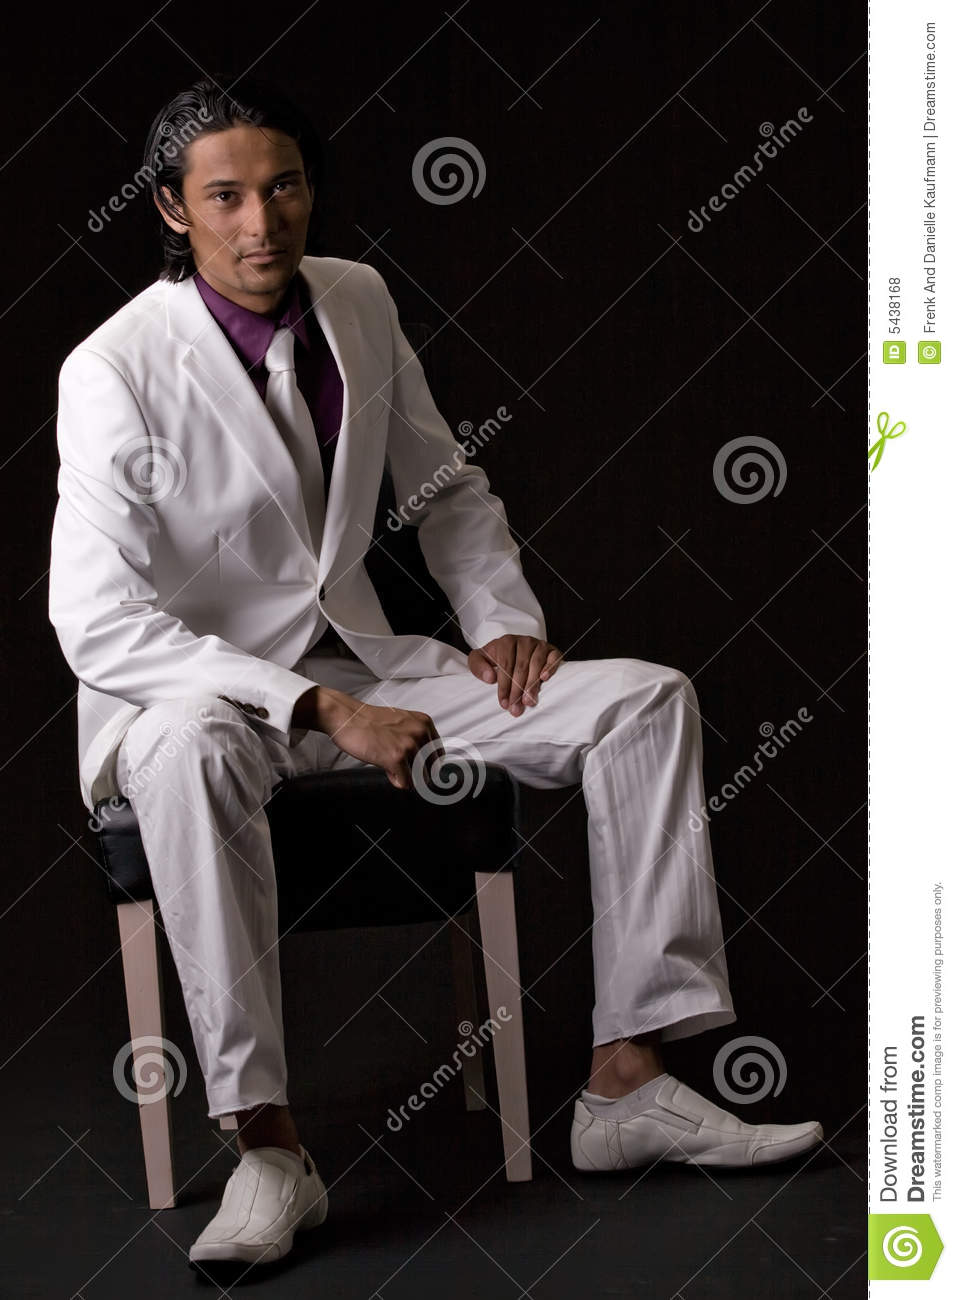 Business man sitting on a chair